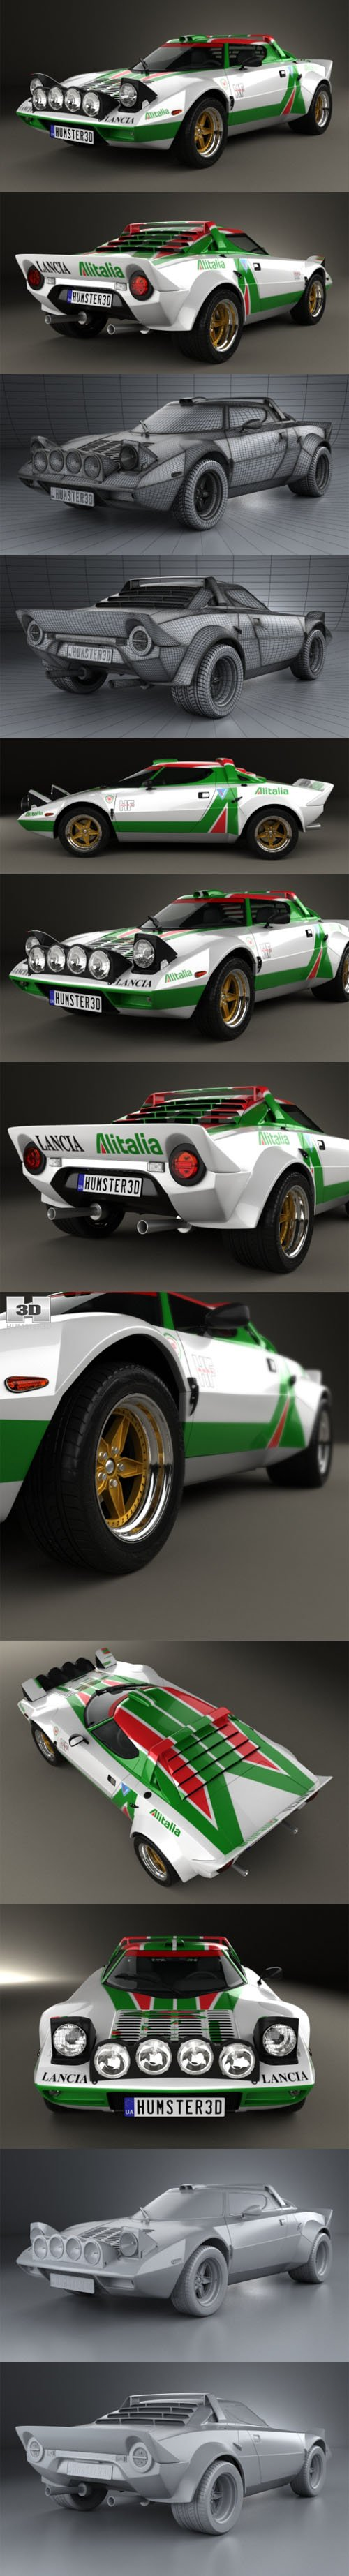 Lancia Stratos Rally 1972 - 3D Models